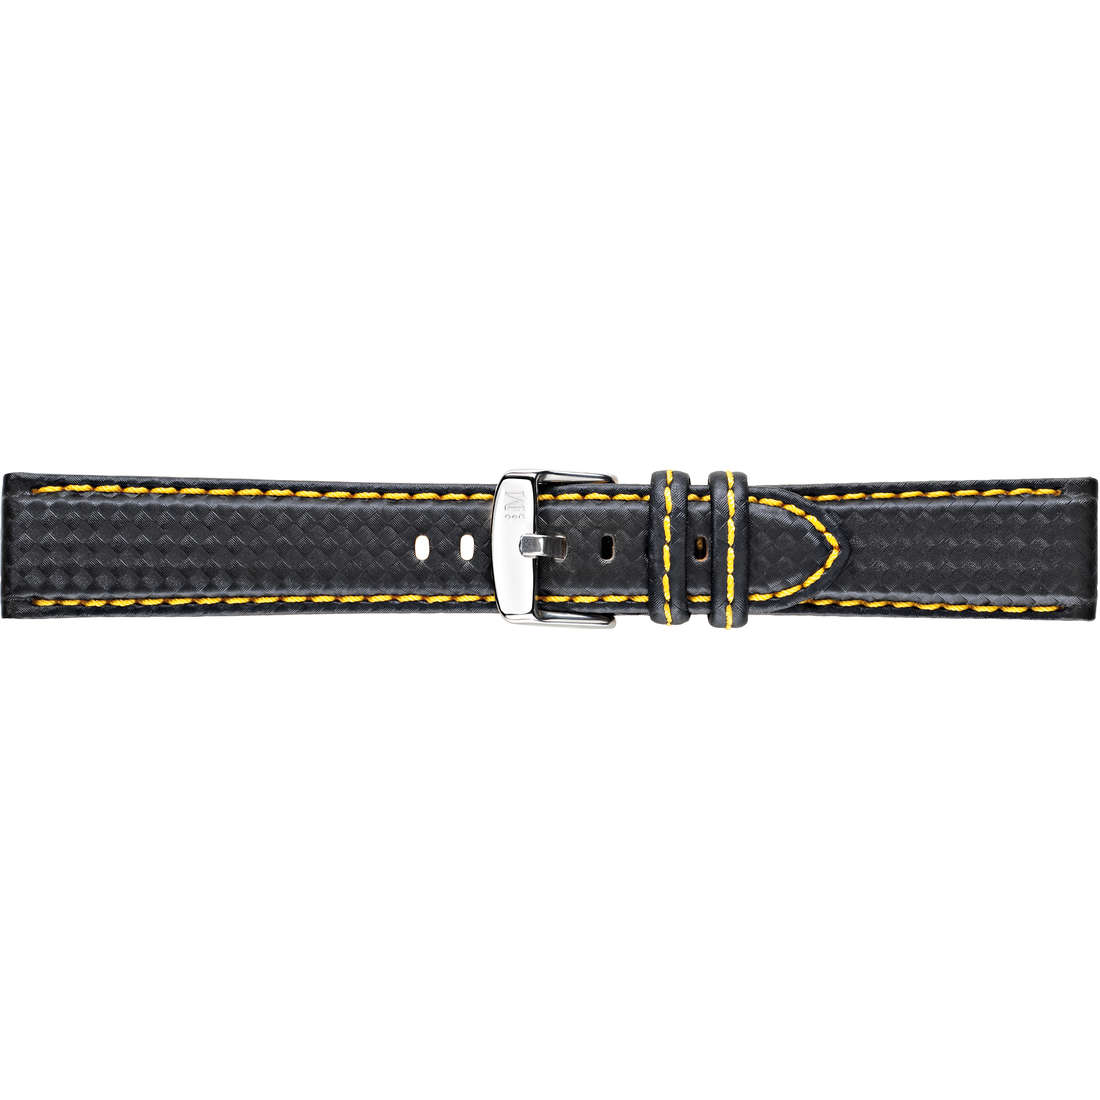 watch watch bands watch straps man Morellato Linea Sport A01U3586977897CR18